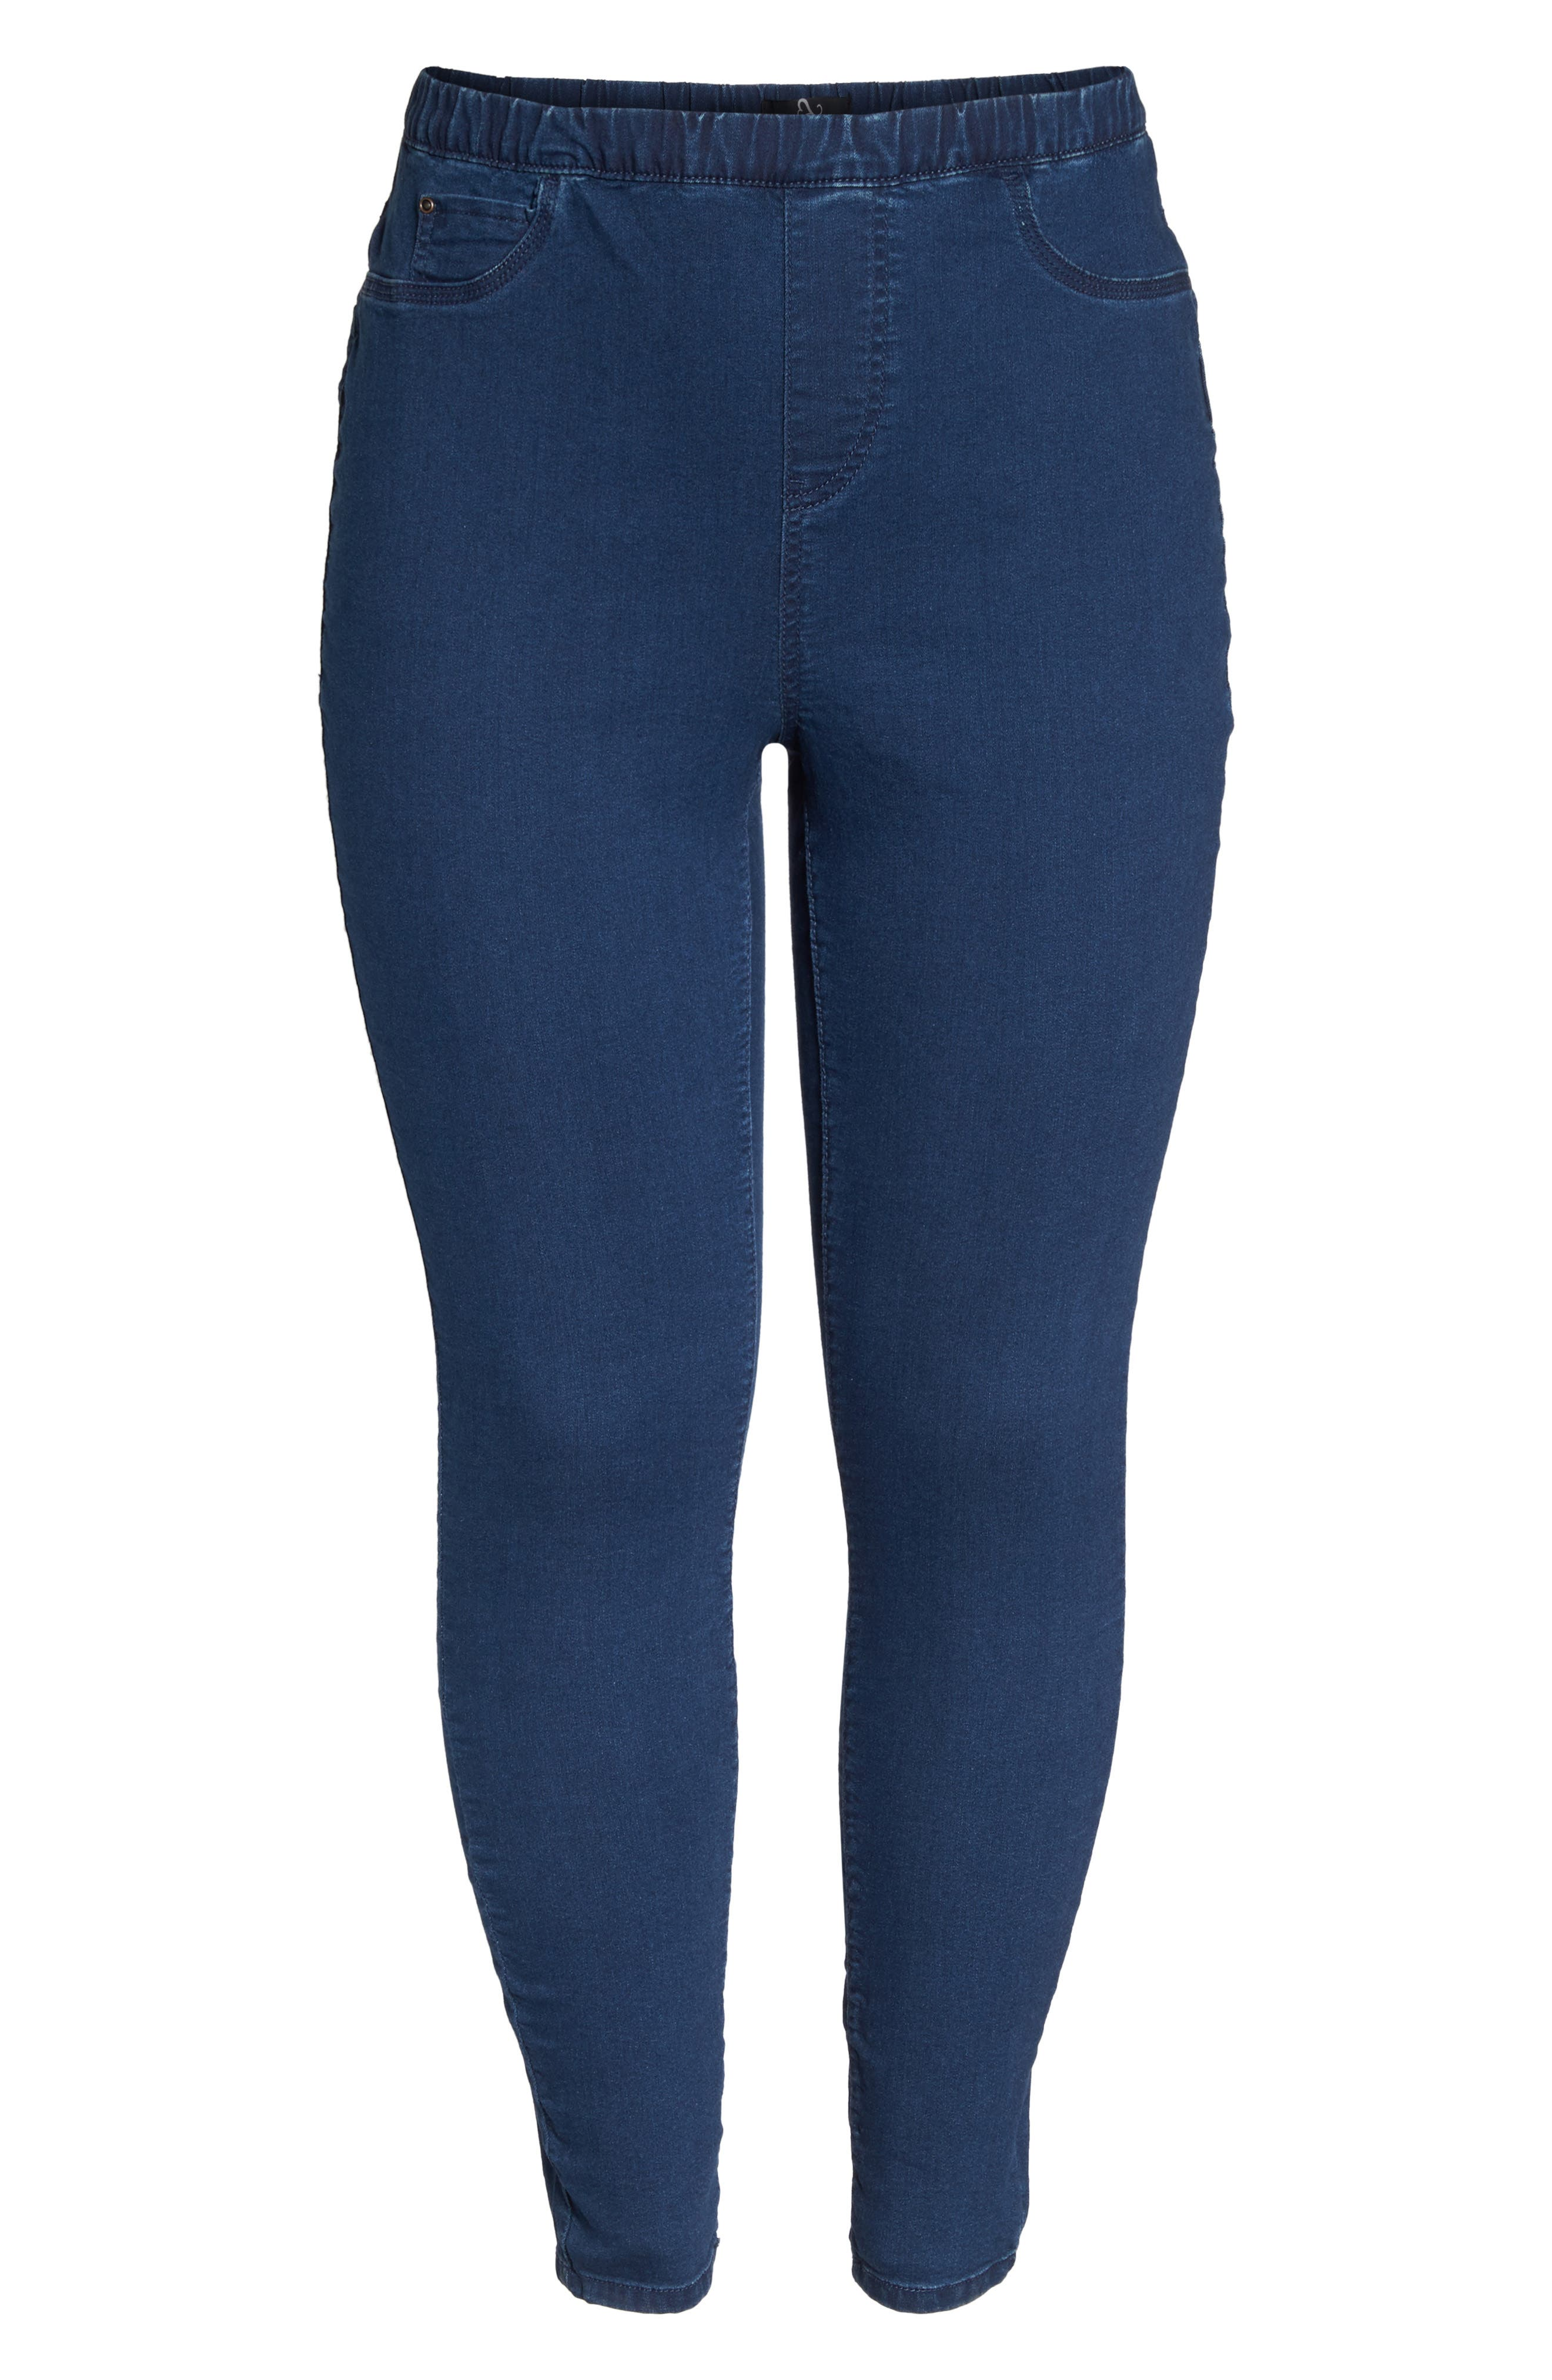 Denim Leggings,                             Alternate thumbnail 6, color,